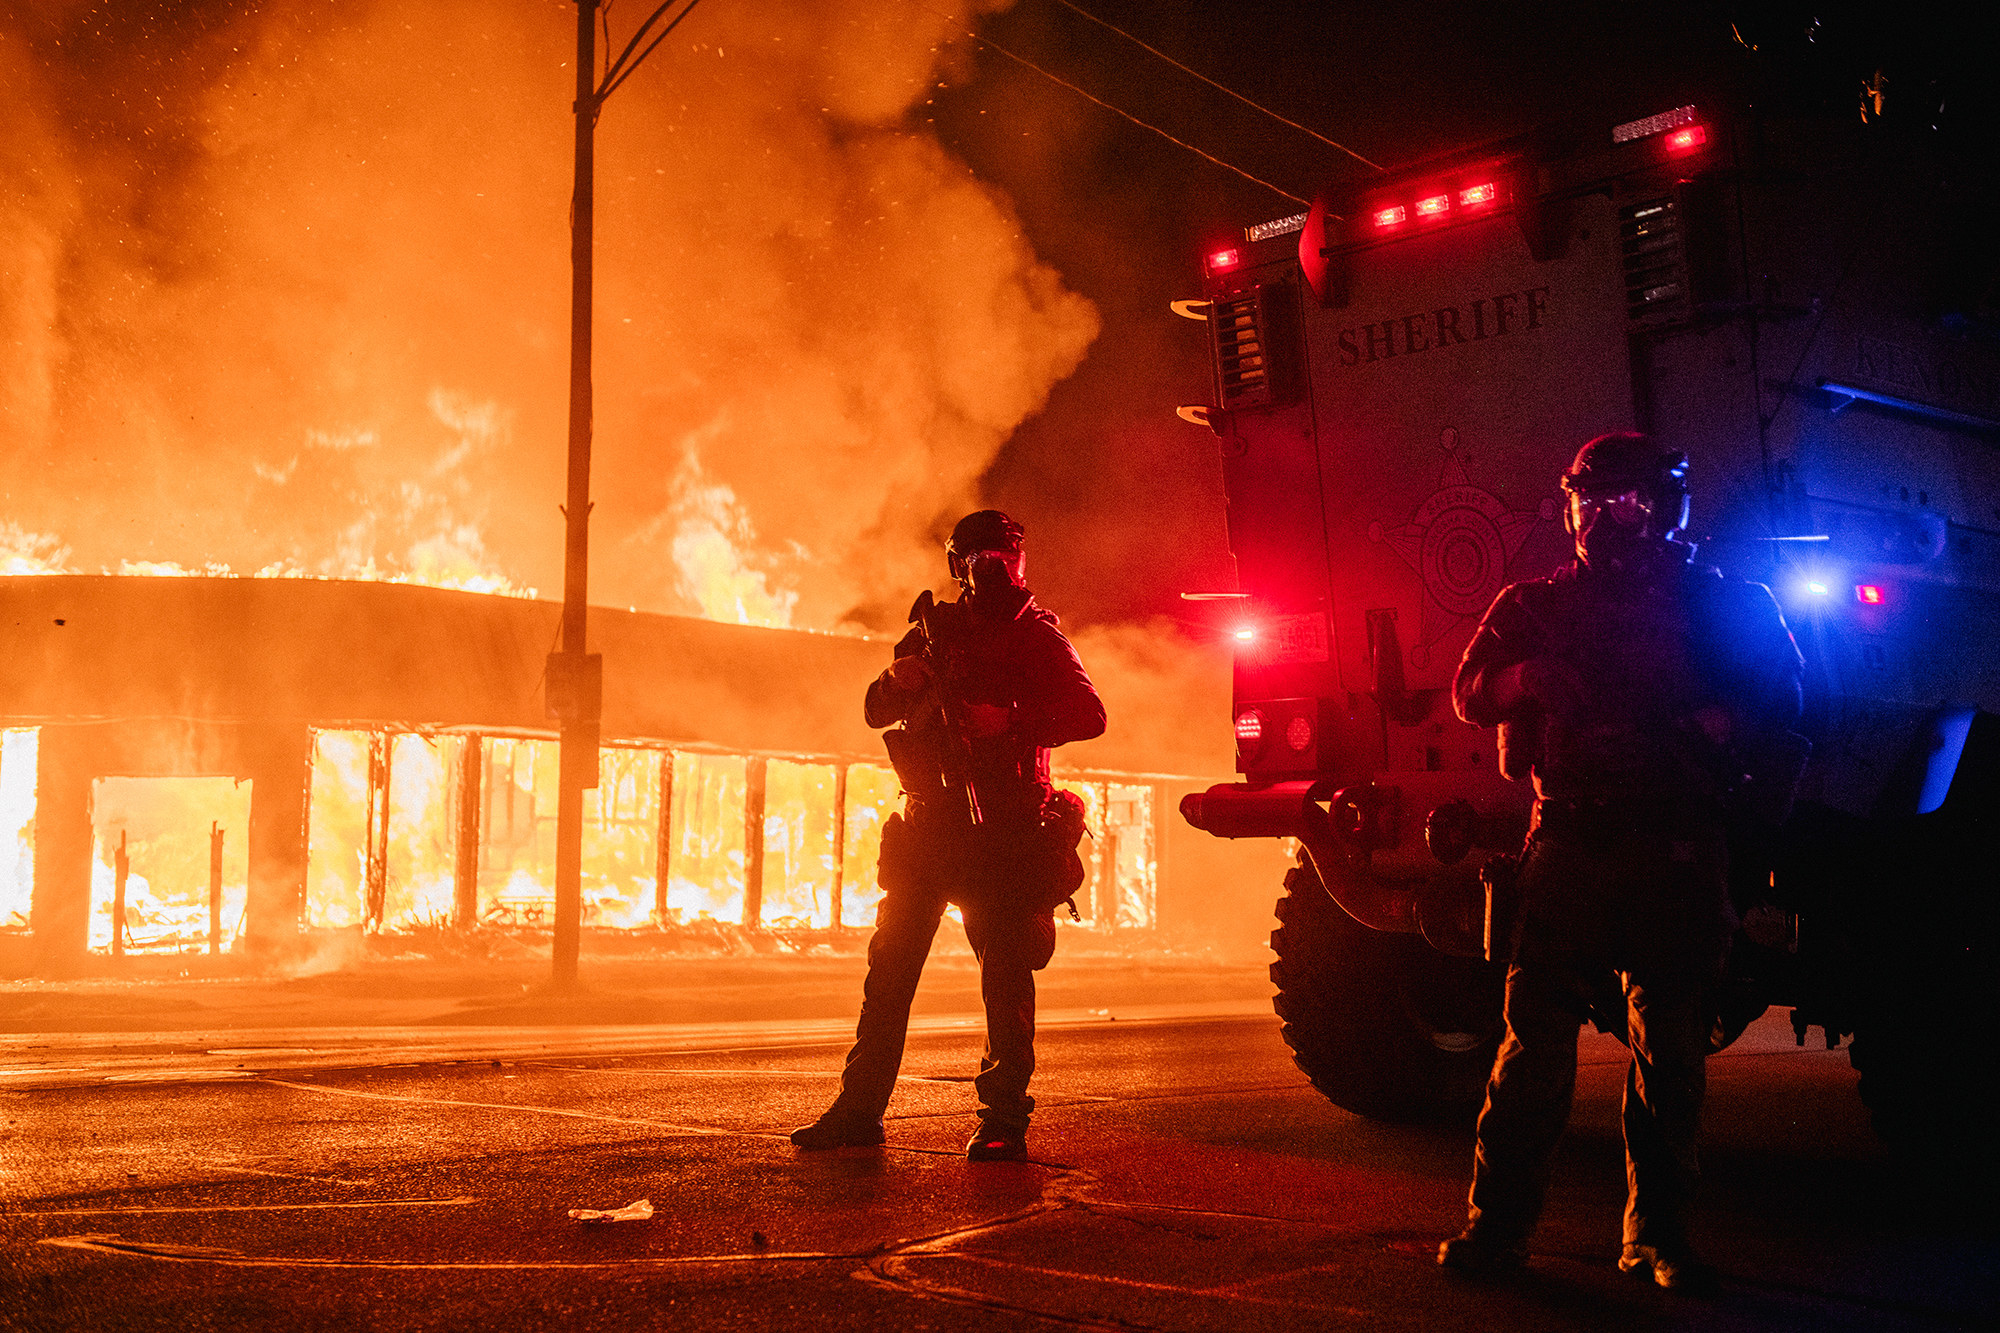 Two police in riot gear stand in front of a burning building